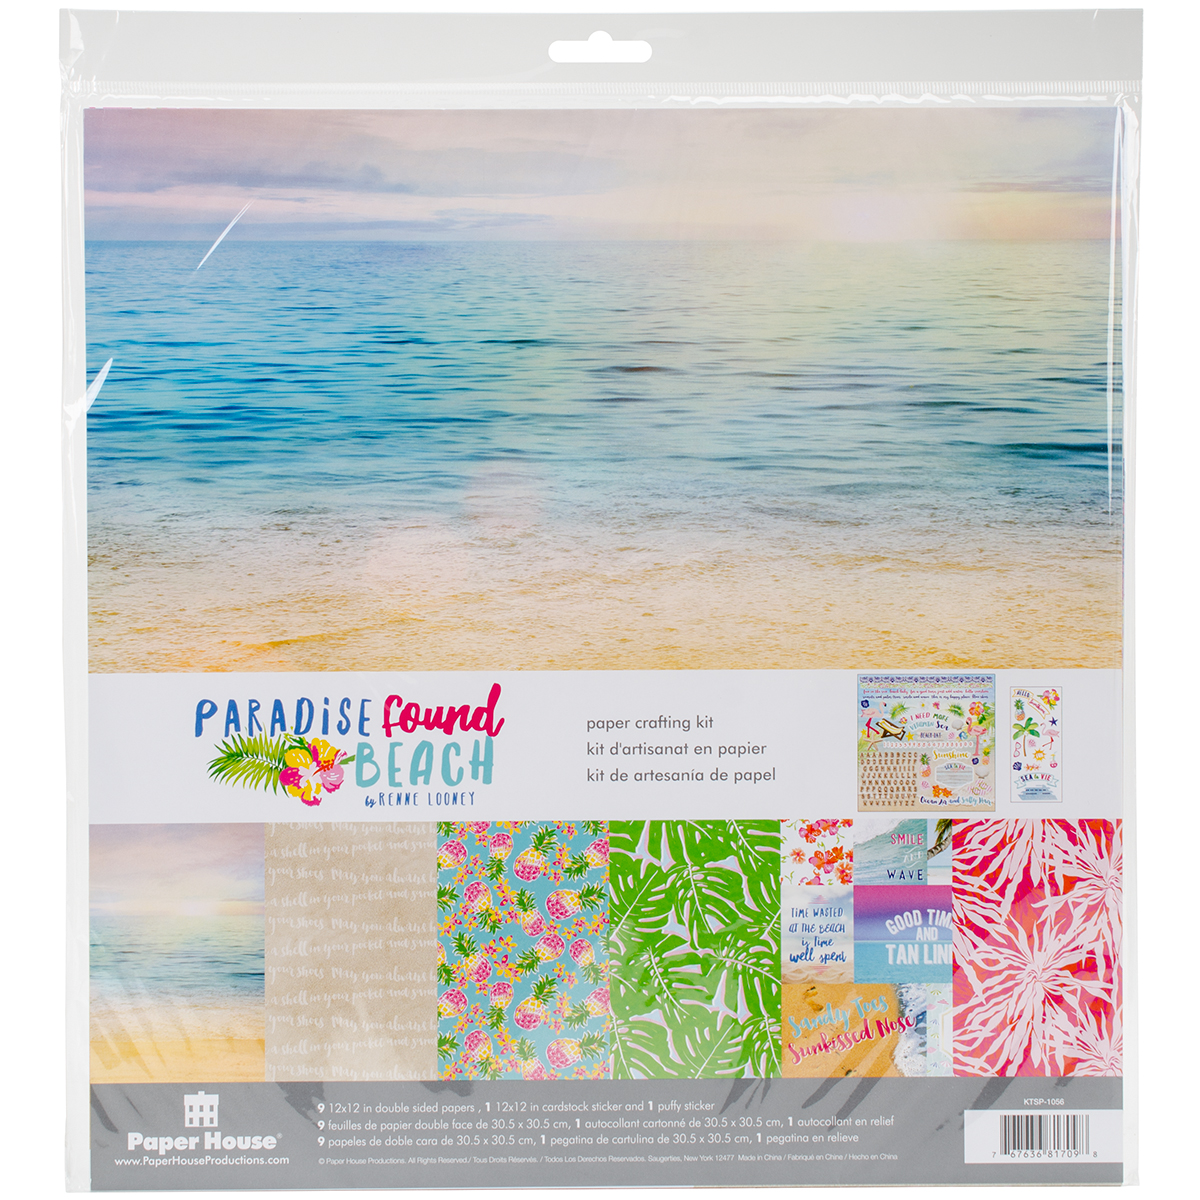 Paper House Paper Crafting Kit 12X12-Paradise Found Beach